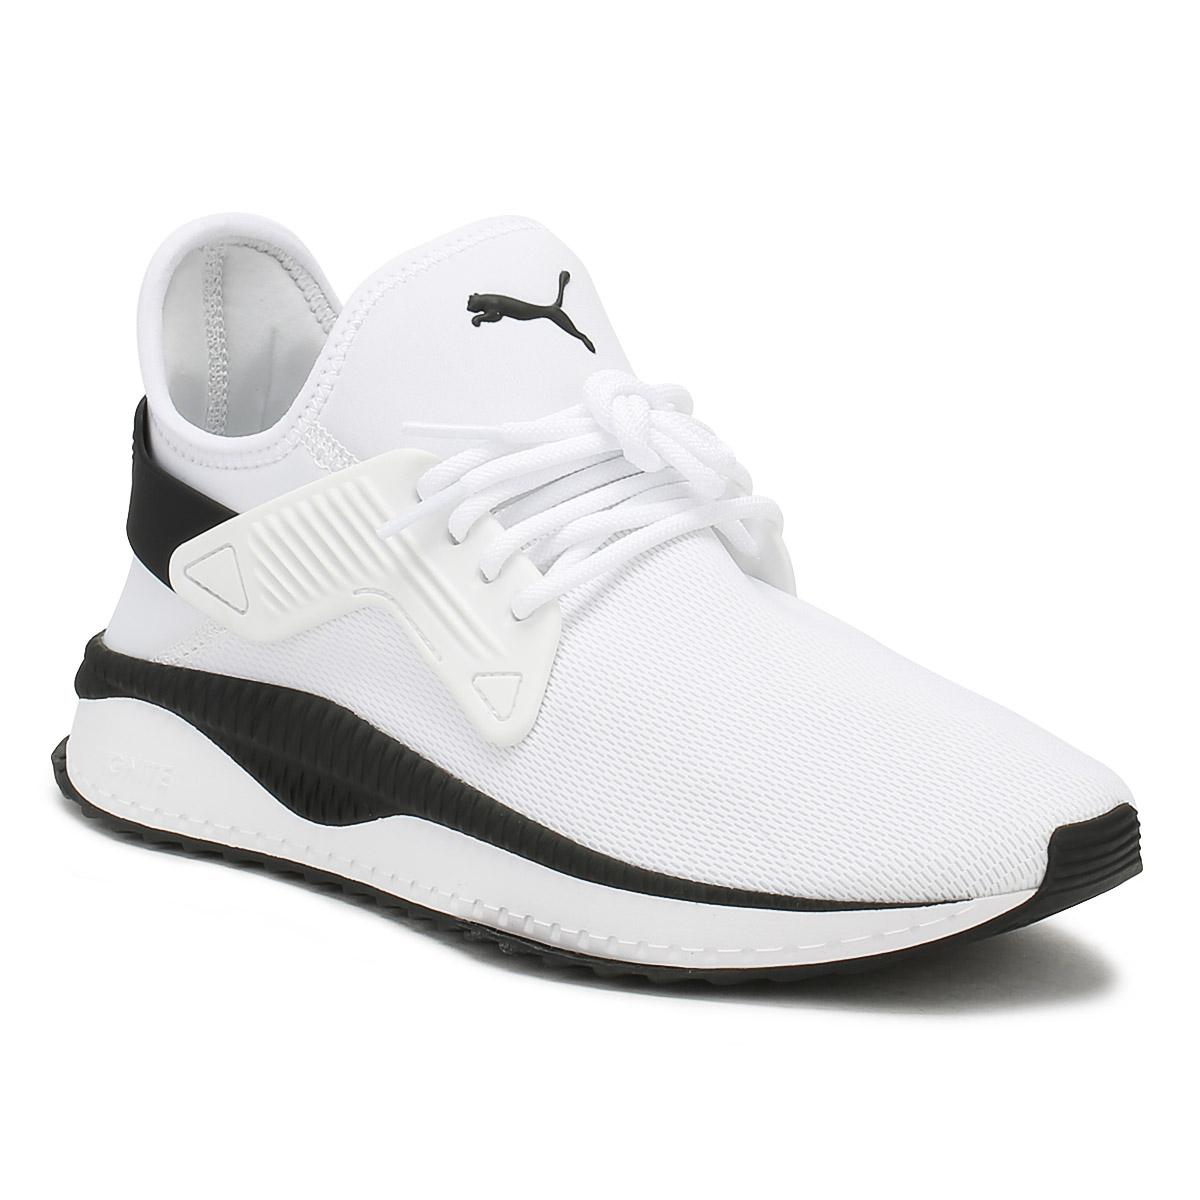 6be0a95614d3 PUMA Mens White Tsugi Cage Trainers in White for Men - Lyst